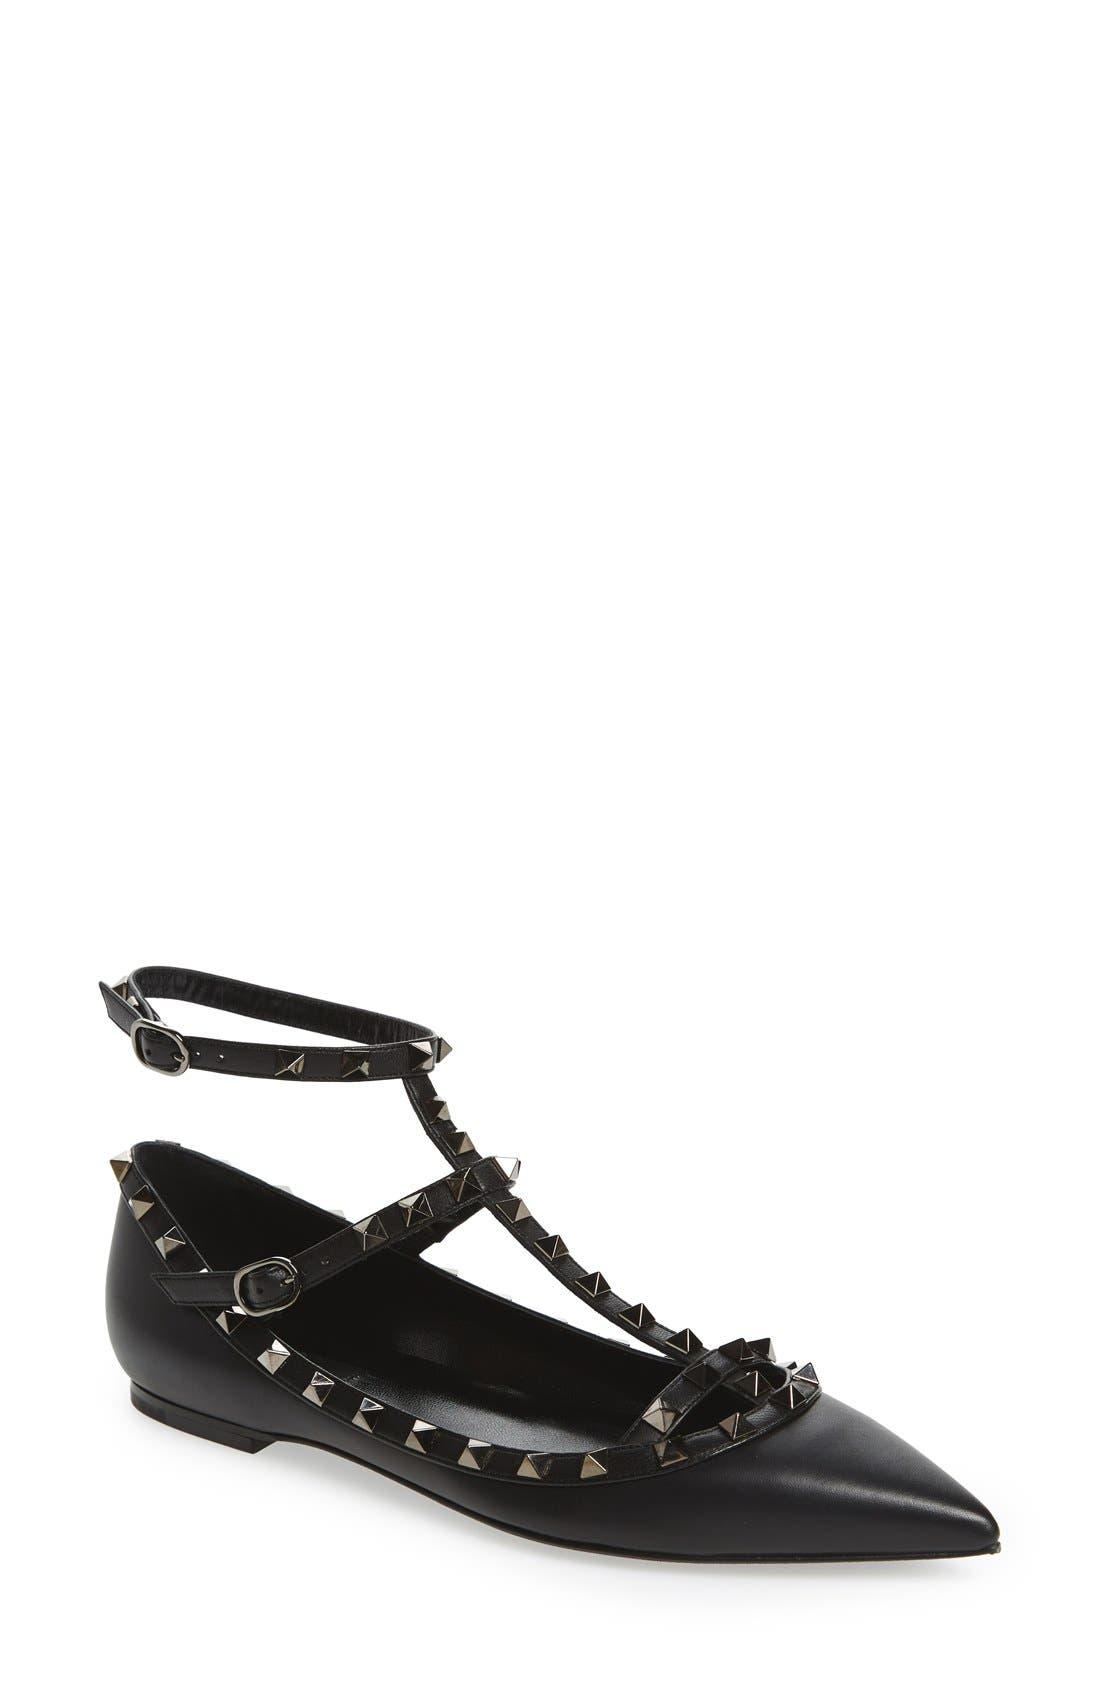 'Rockstud' Double Ankle Strap Pointy Toe Flat,                             Main thumbnail 1, color,                             BLACK LEATHER